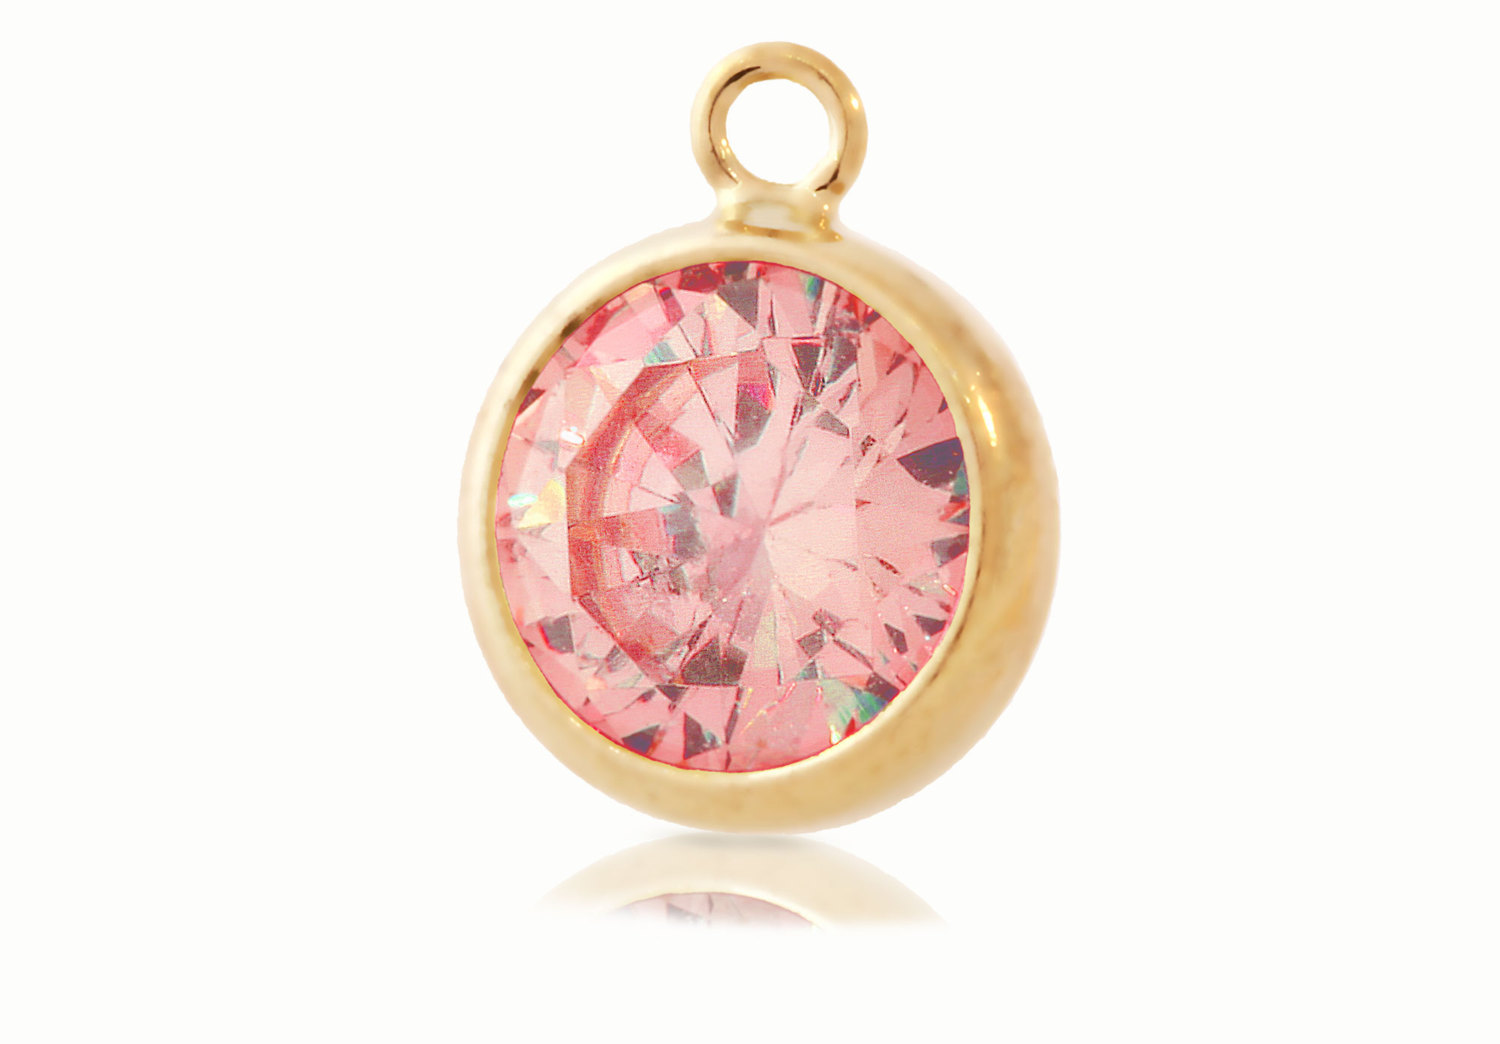 Primary image for Bezel Drop, Pink CZ, 14Kt Gold Filled, 6mm, Pkg Of 1pc (5589)/1